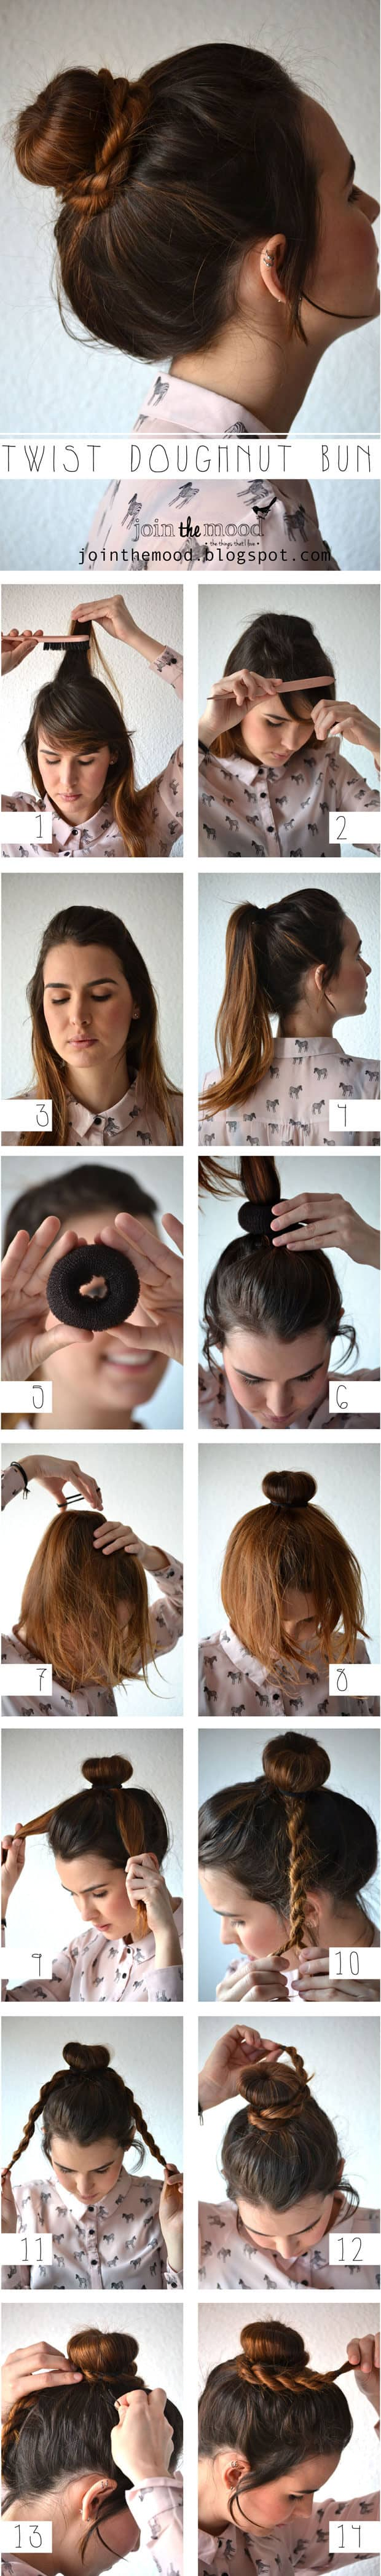 Twist-wrapped Donut Bun Updo Hairstyle